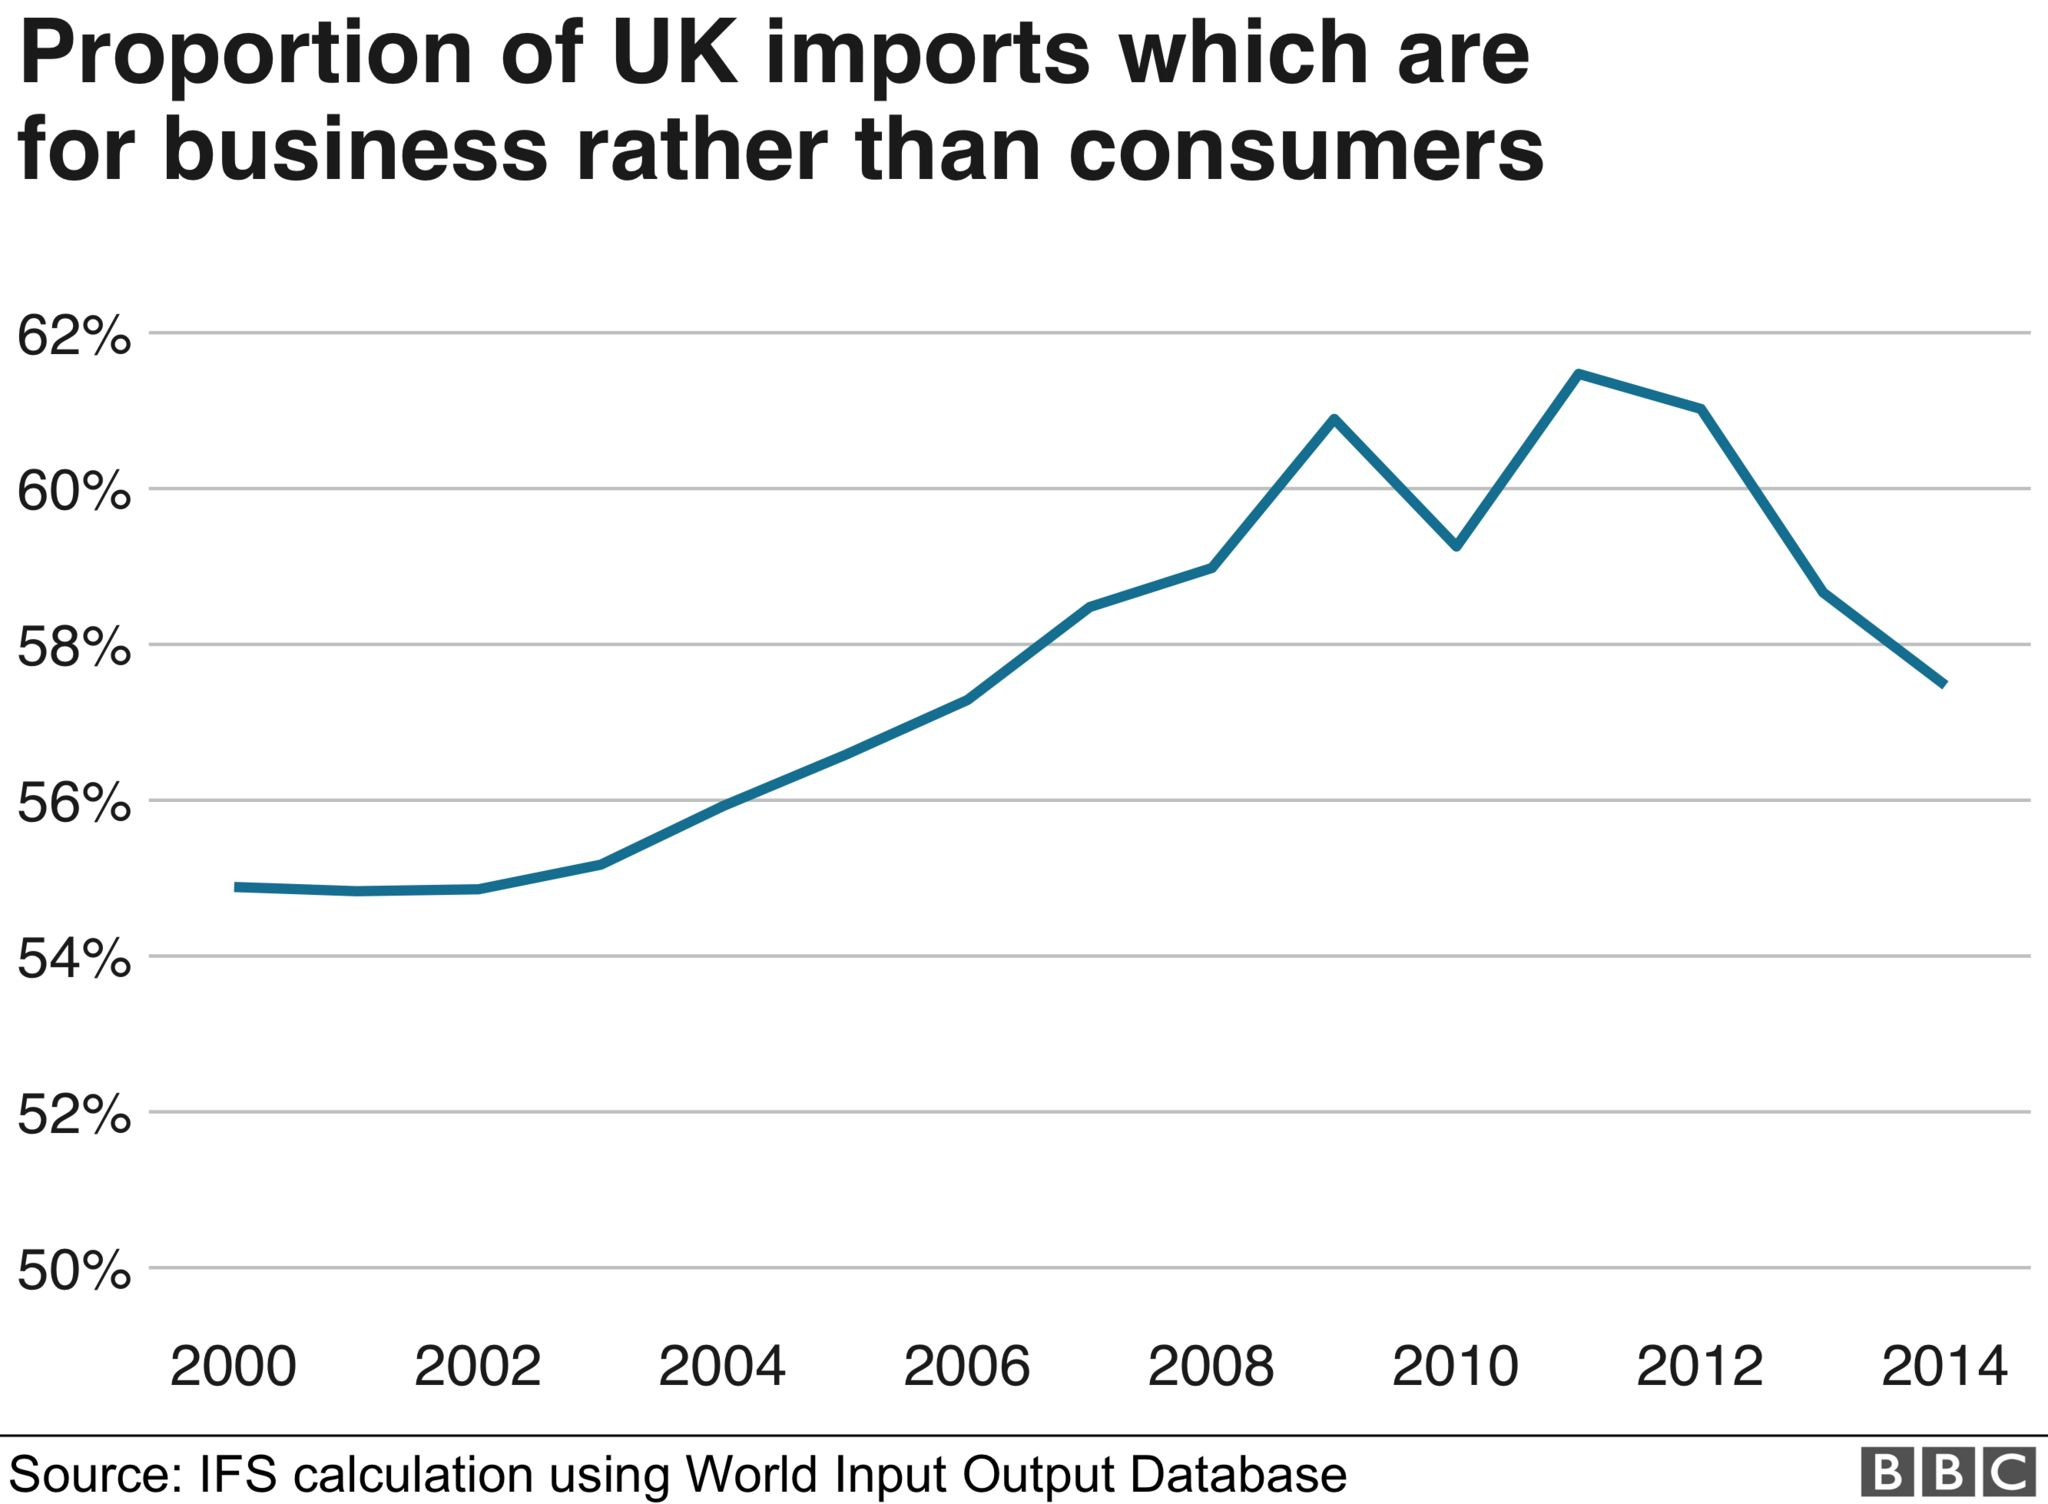 Proportion of UK imports for business